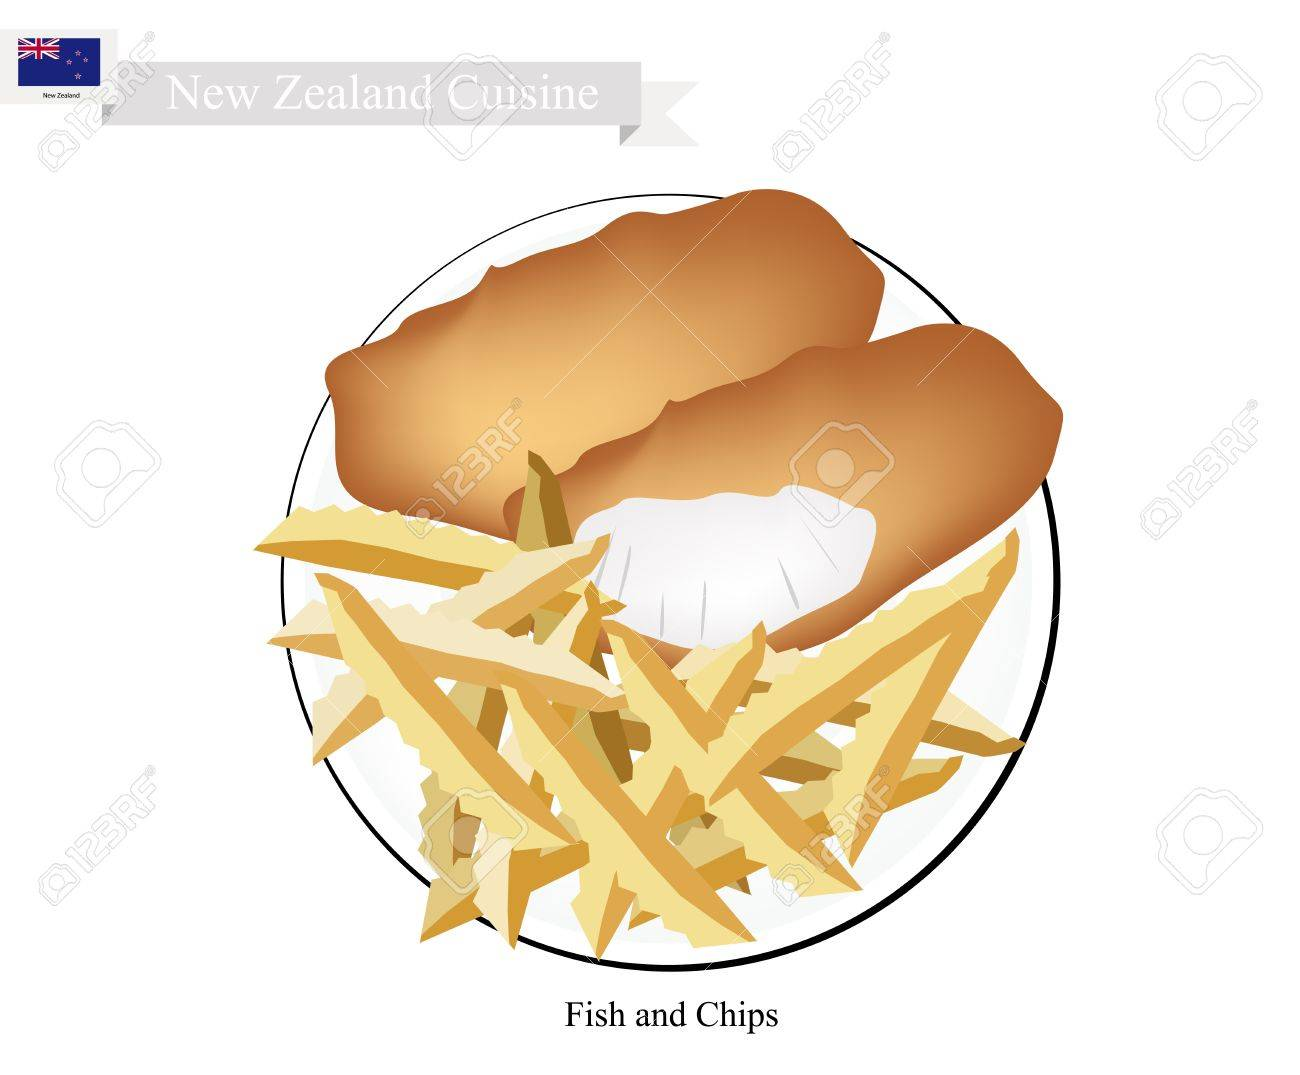 Neuseeland Küche, Illustration Der Traditionellen Fish And Chips ...